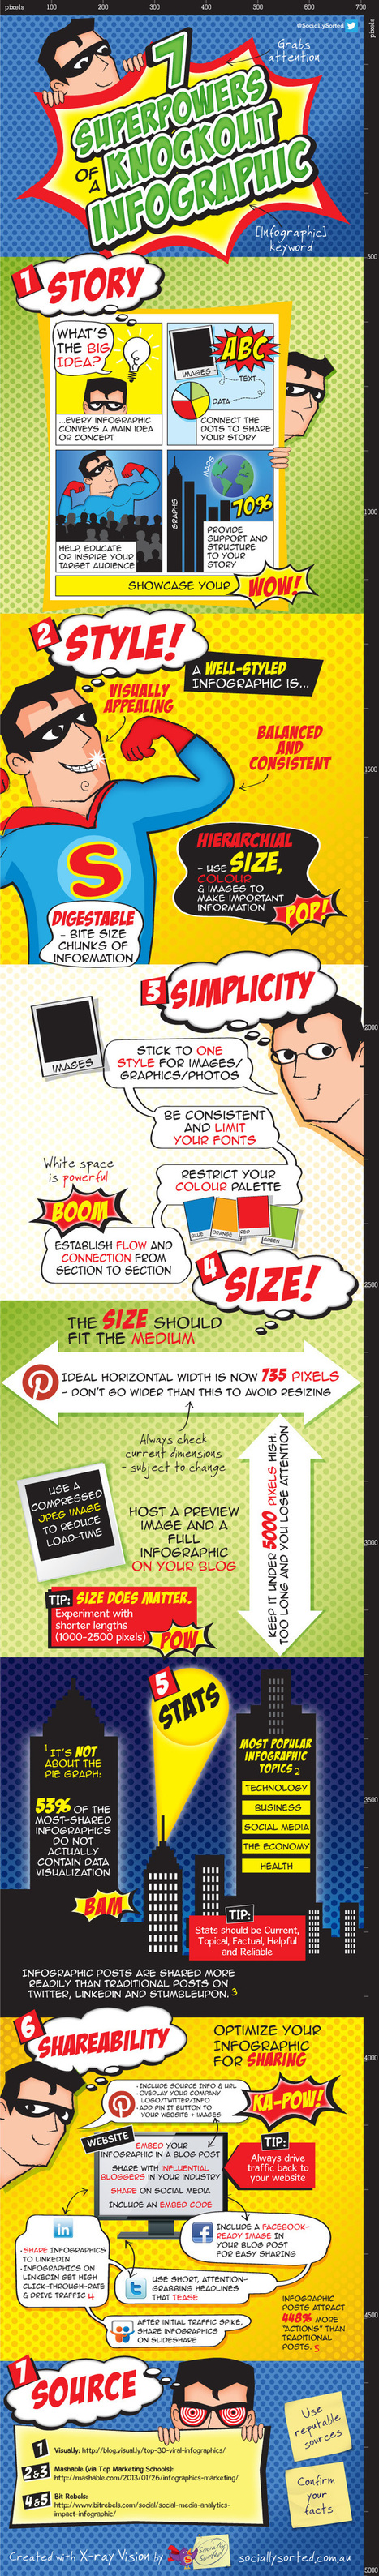 Content Marketing: 10 reasons to include infographics in your strategy | Social Media Marketing That Works! | Scoop.it